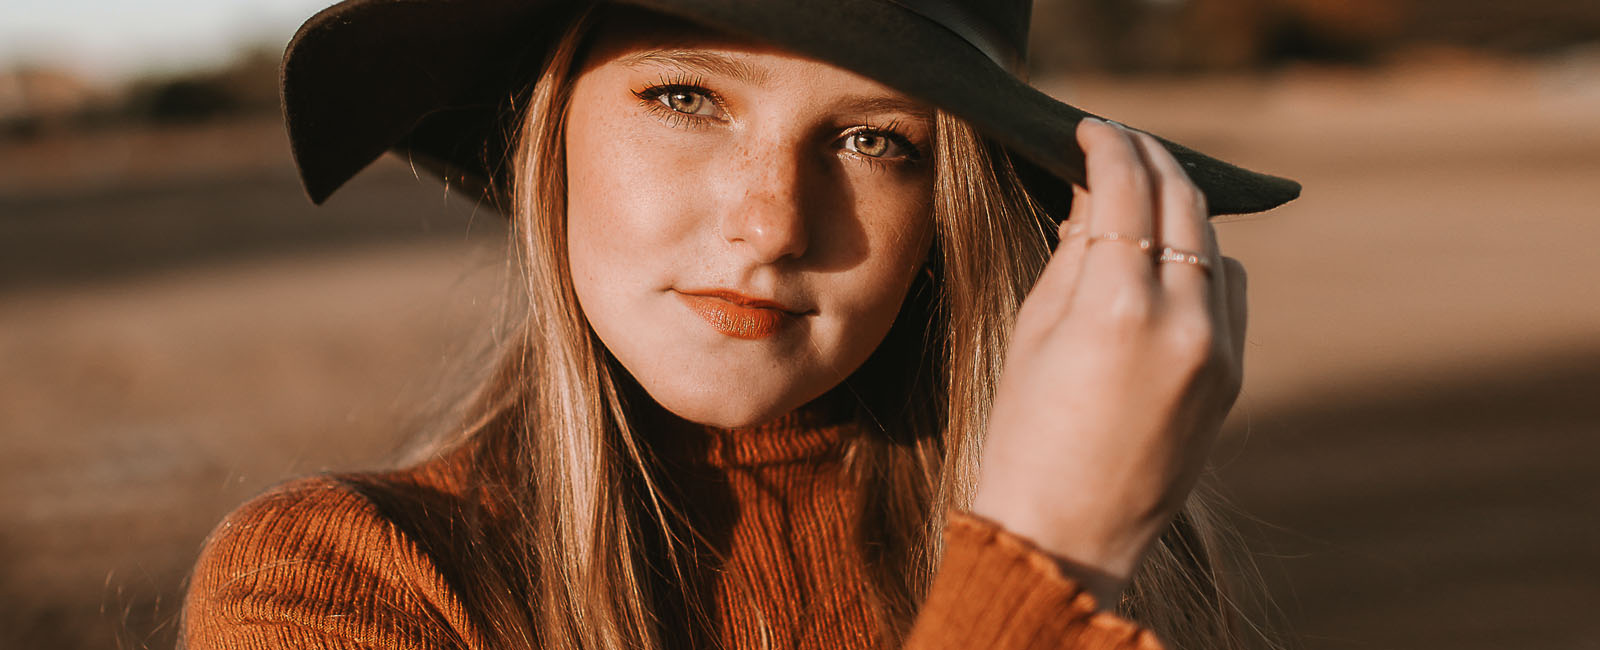 freckled face teenager in sunlight wearing hat